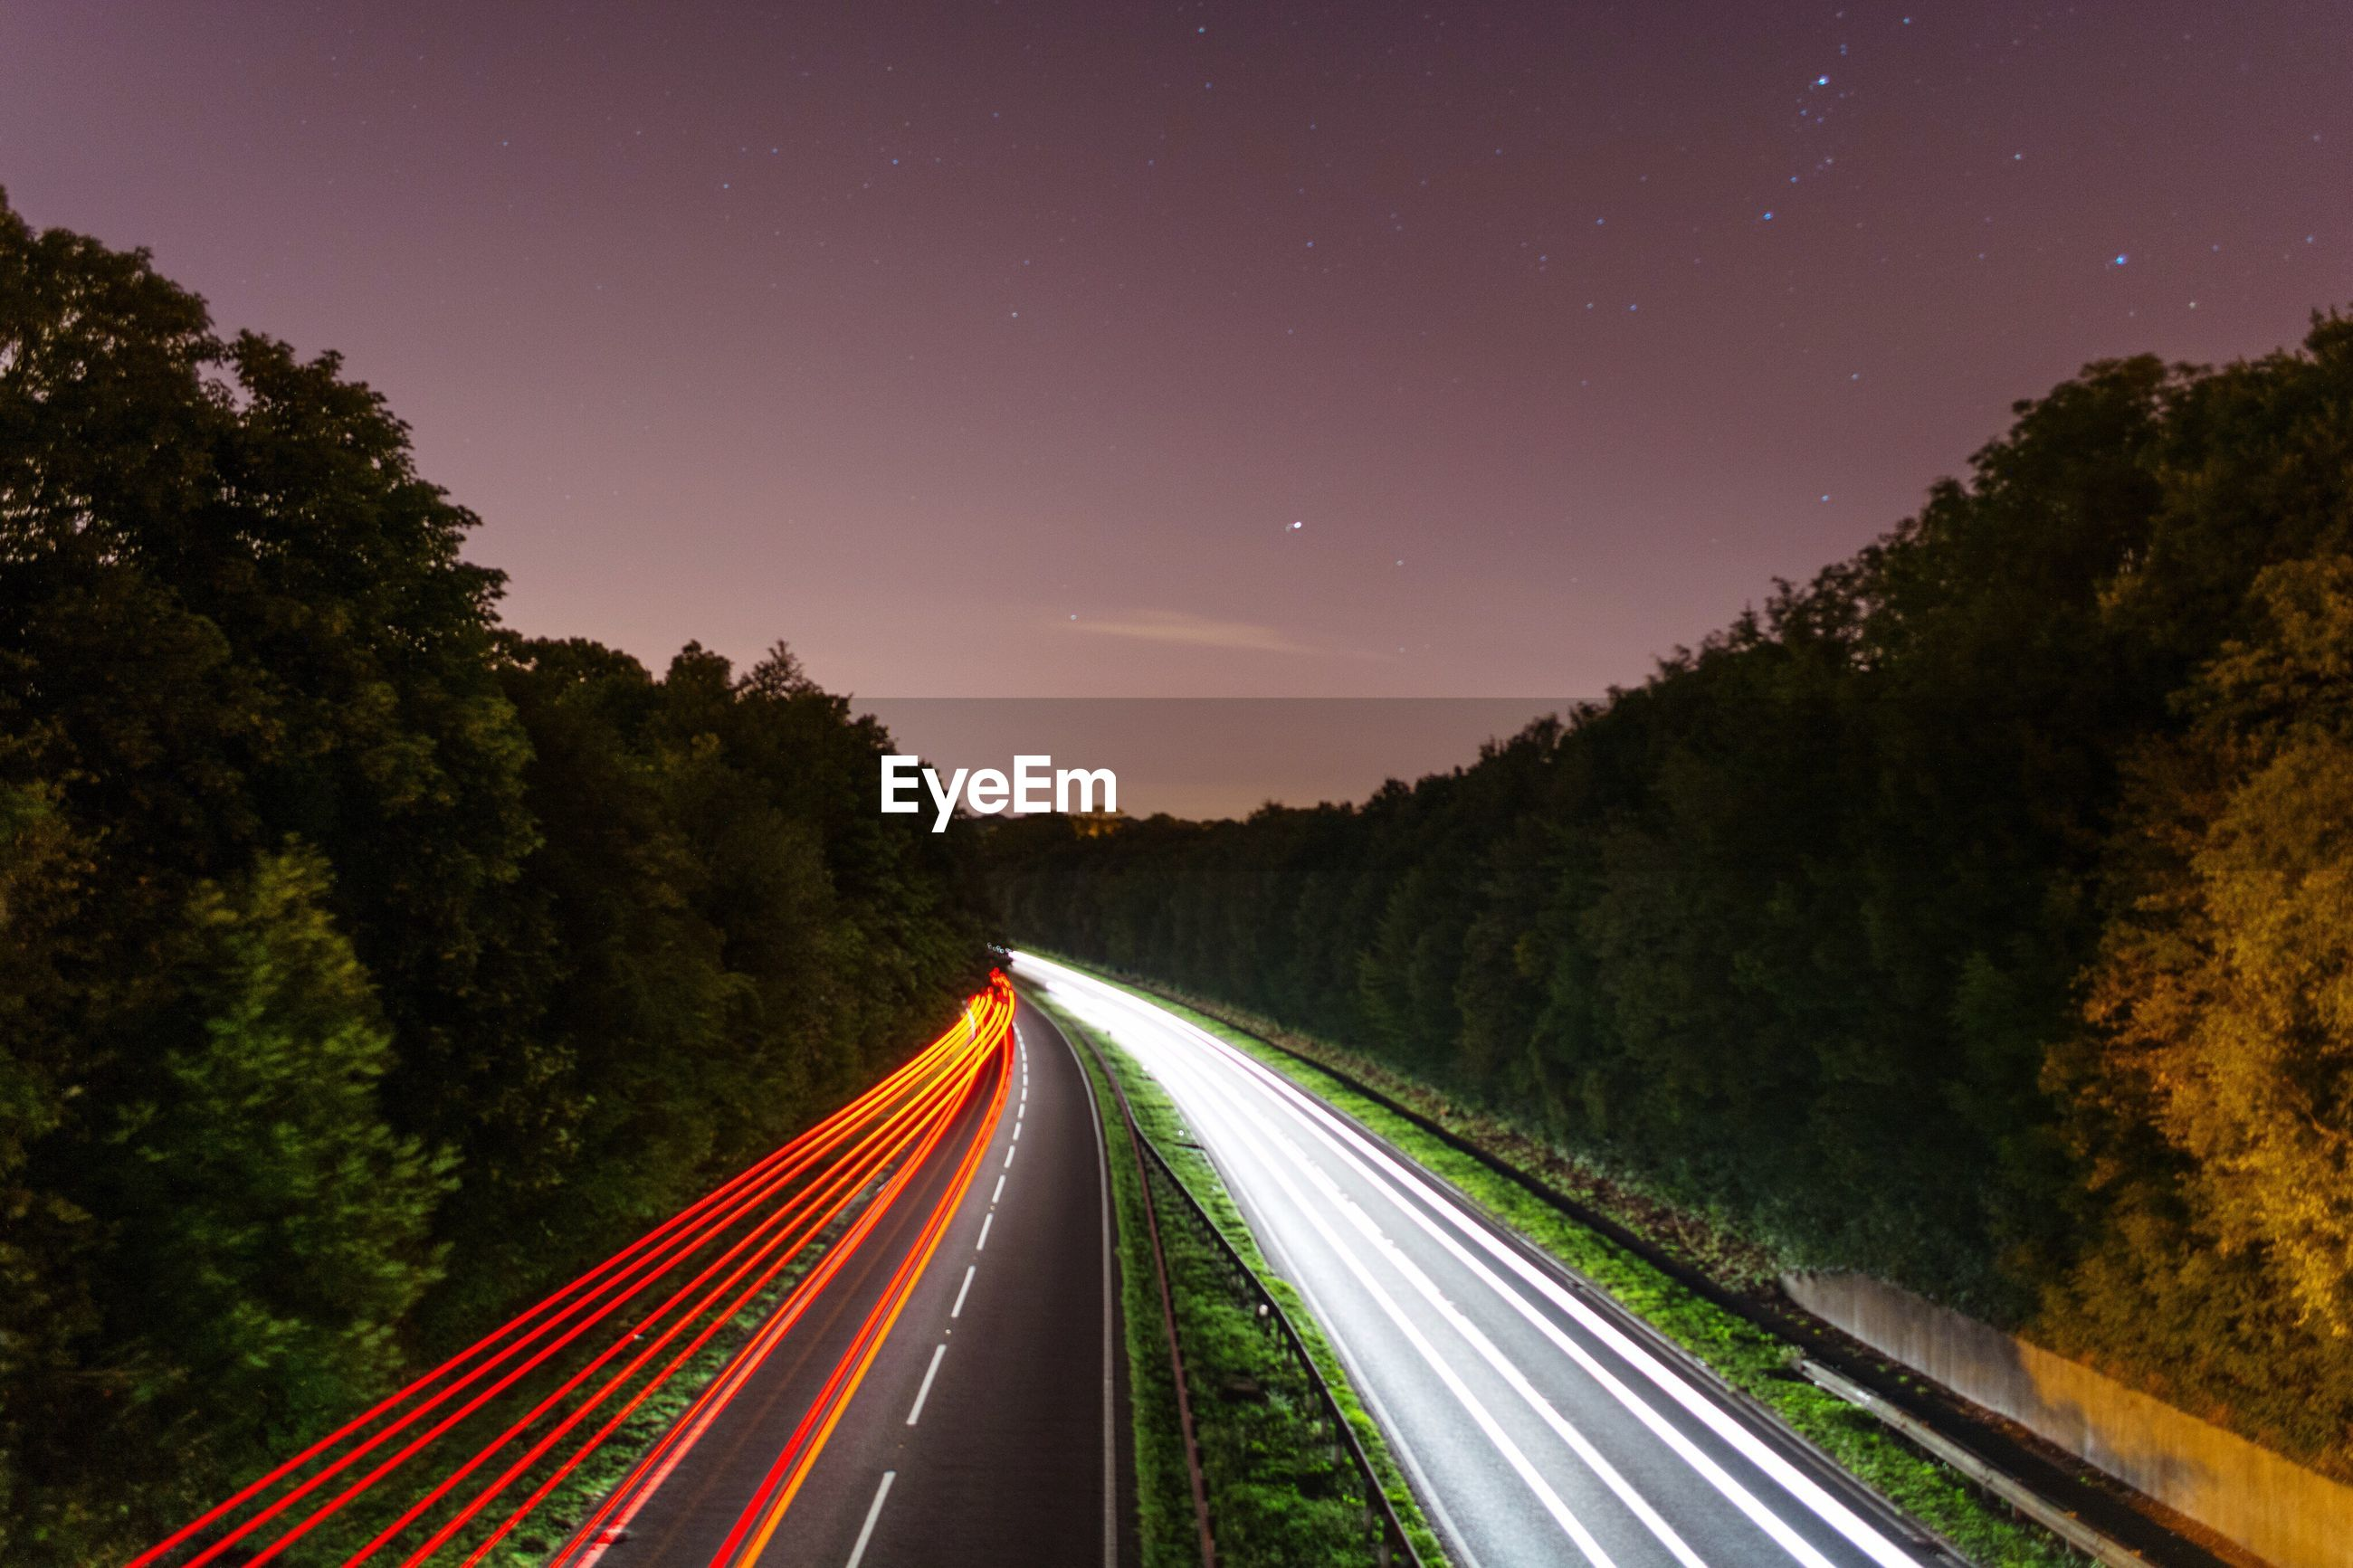 Light trails on road by trees against sky at night